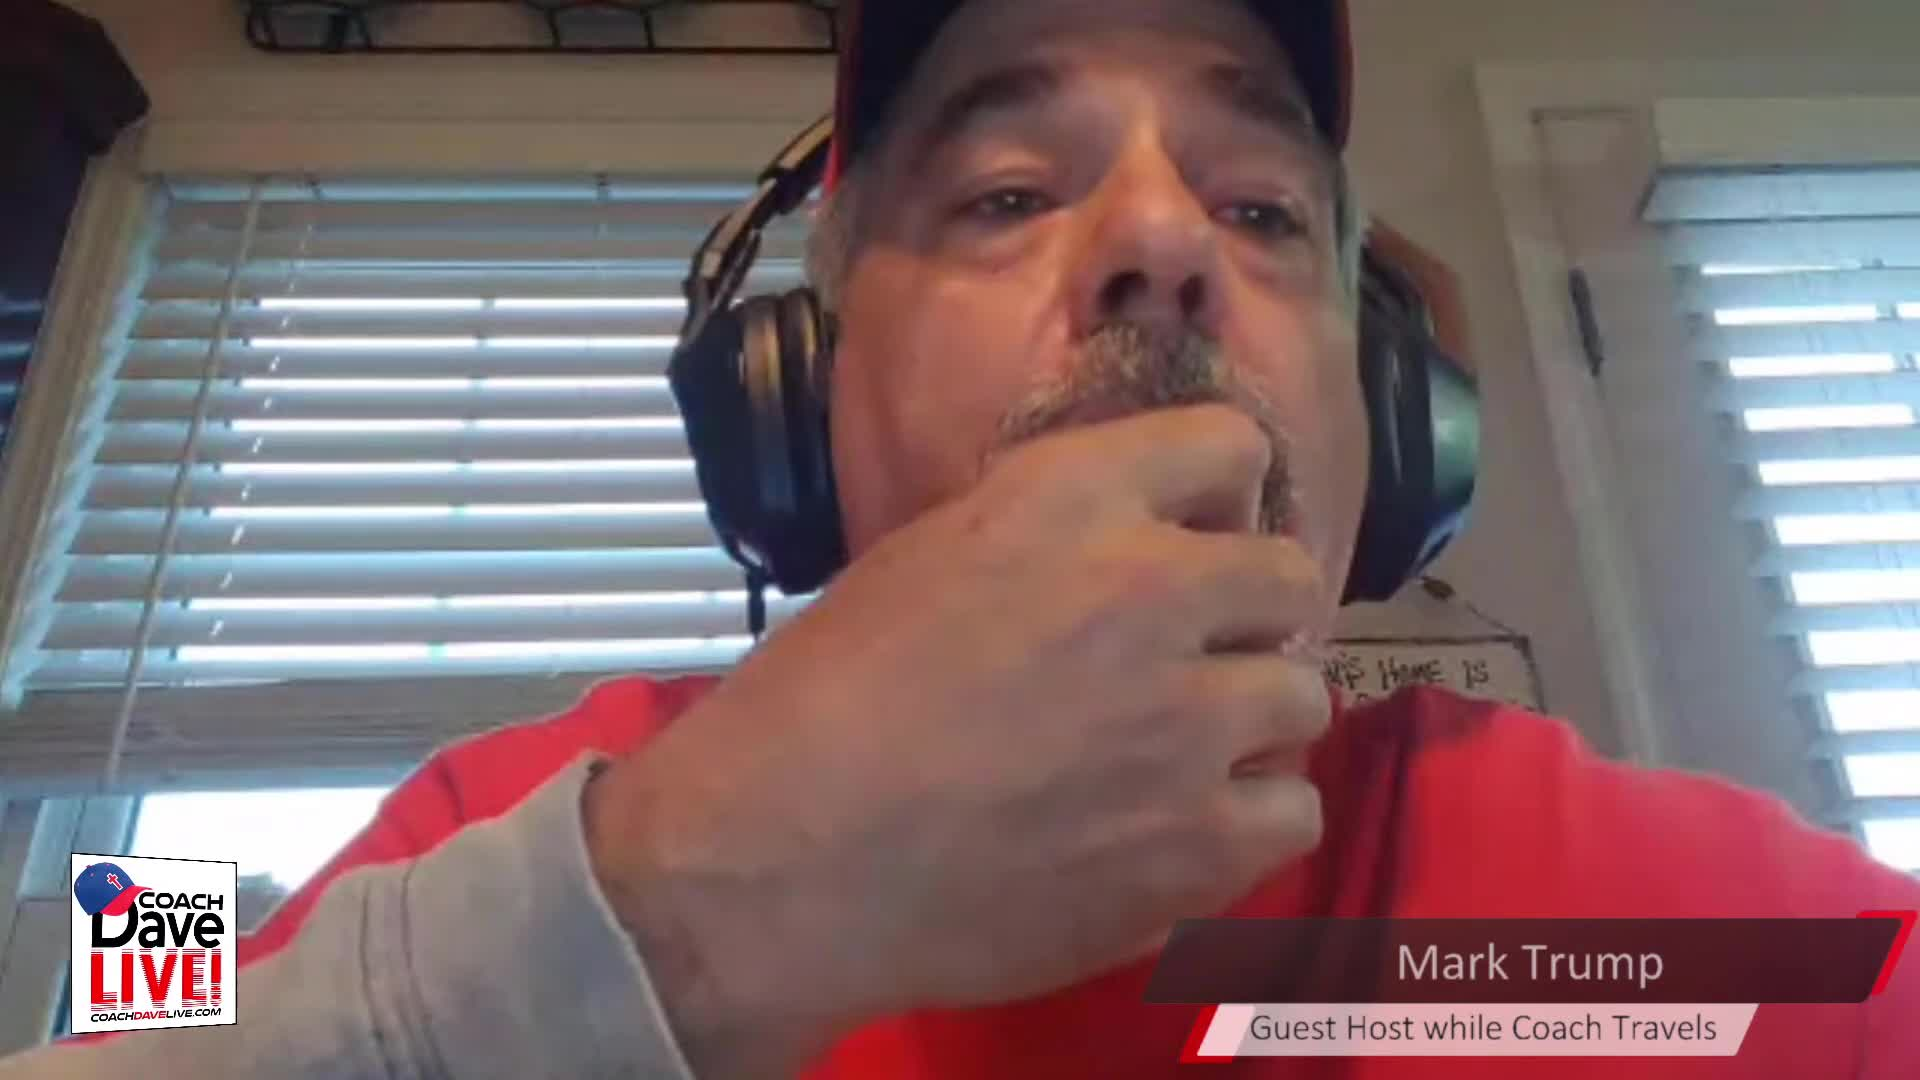 Coach Dave LIVE | 4-9-2021 | GUEST HOST MARK TRUMP: JUDGMENT OF THE WORLD